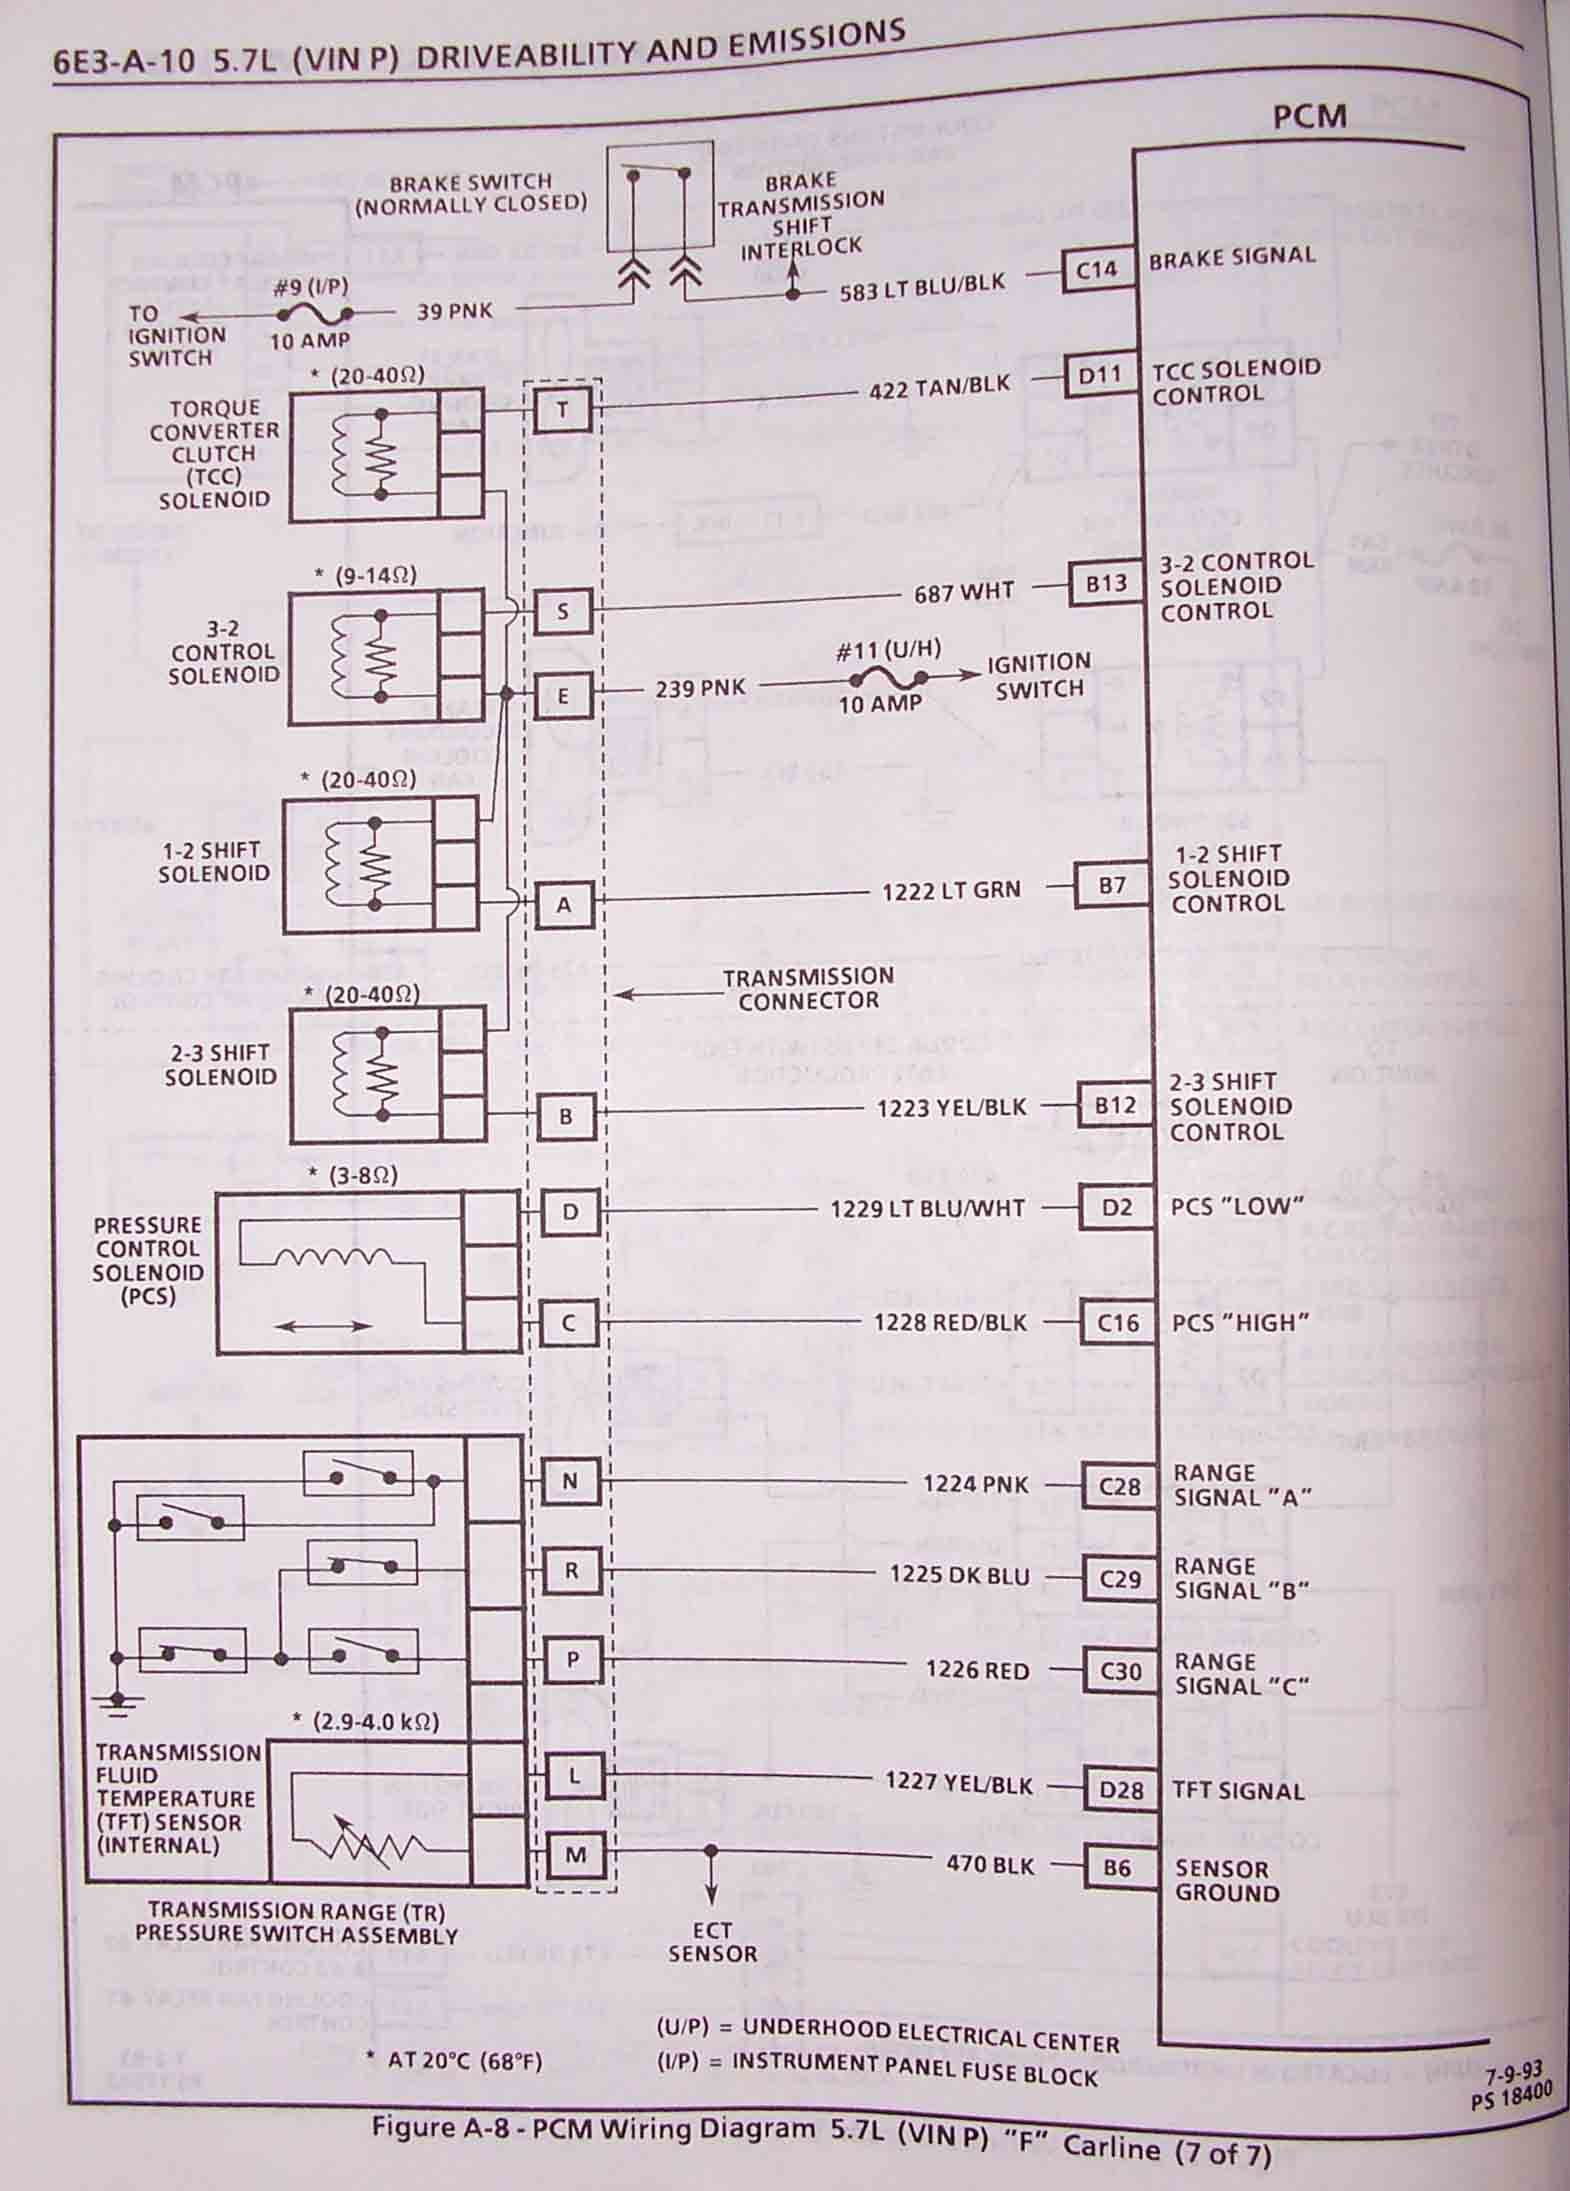 1995 F Body Wire Harness Schematics Lt1 Fuse Box These Are Specifically For 1994 Camaro Firebird 57l However Will Be Very Similar To